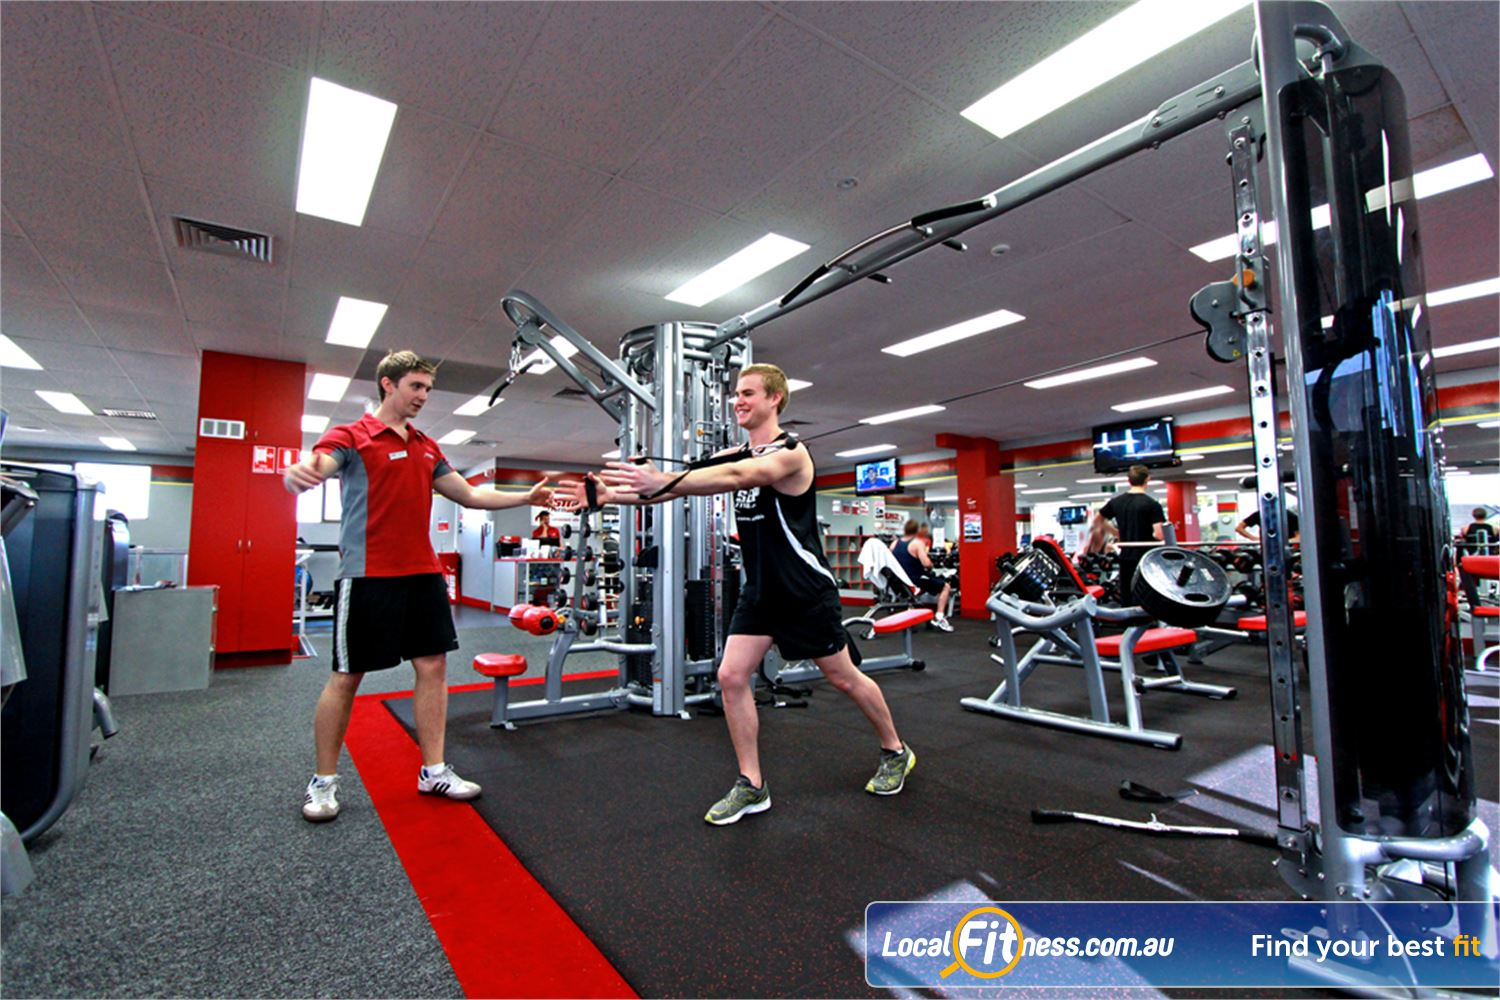 Snap Fitness Near Bellfield 24 hour Snap Fitness access means you can avoid crowded gyms.